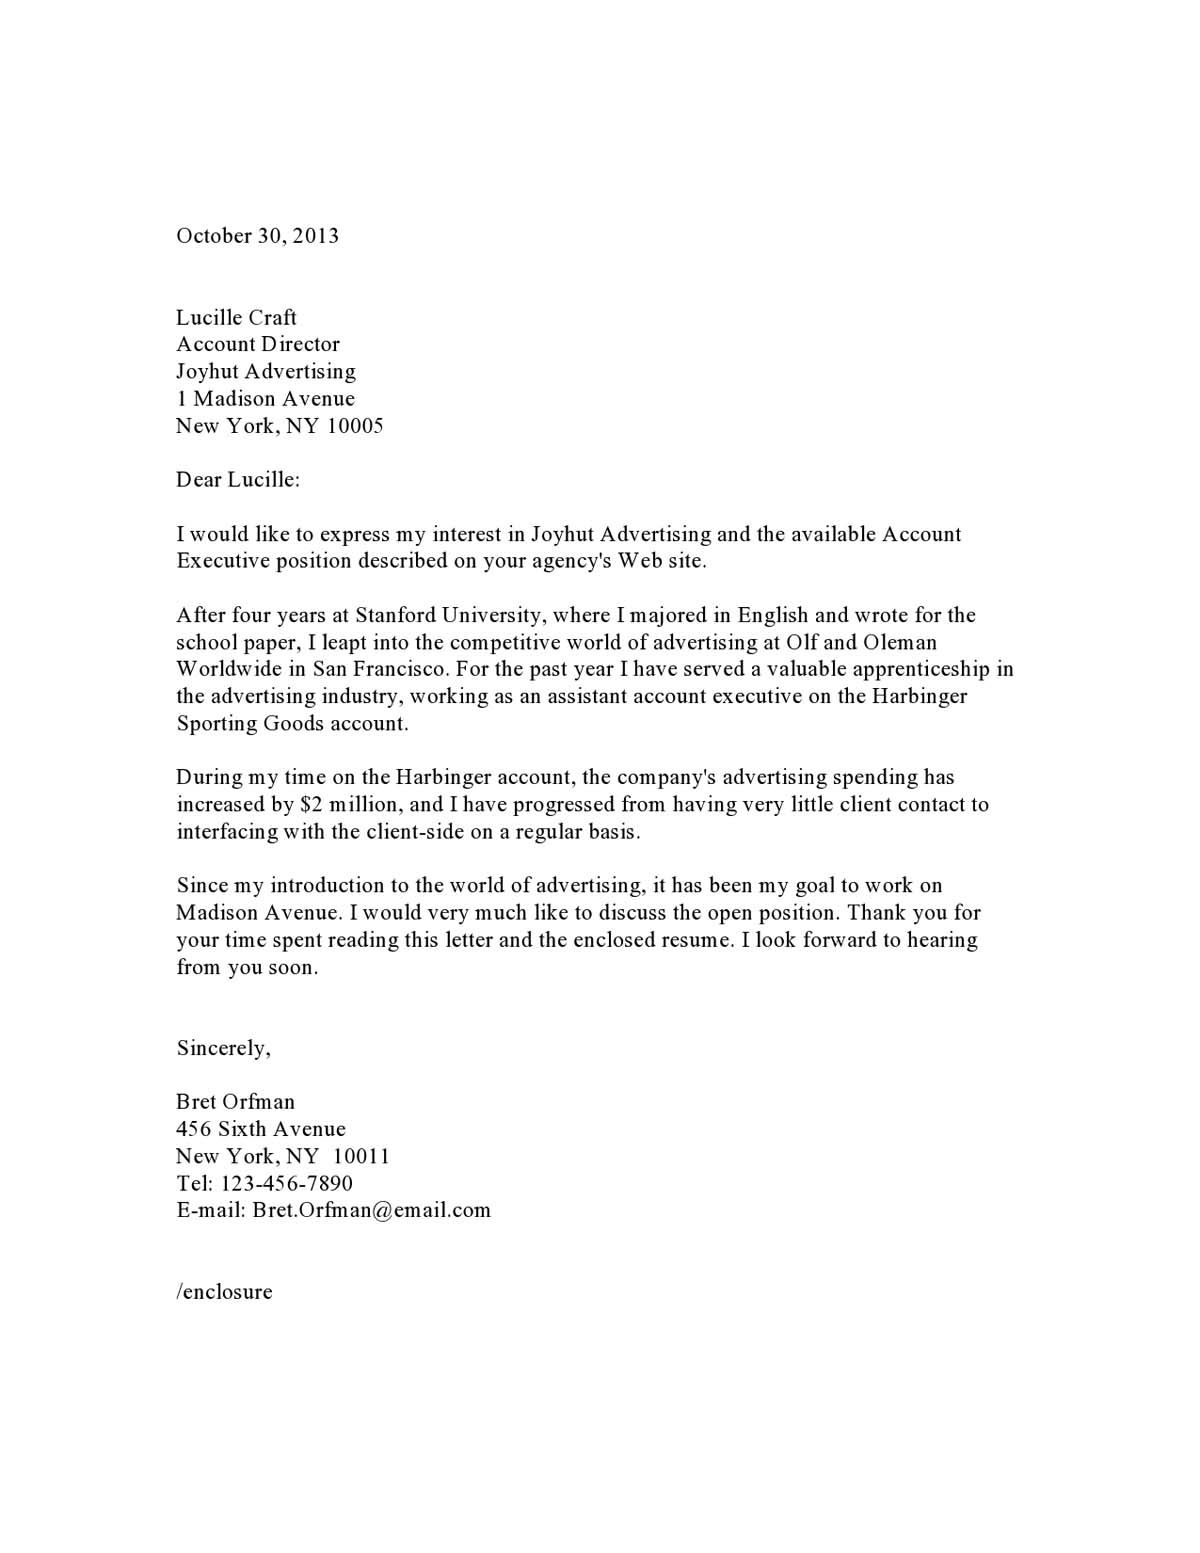 004 Awful Sample Cover Letter Template Picture  For Administrative Assistant Best Job Application CvFull